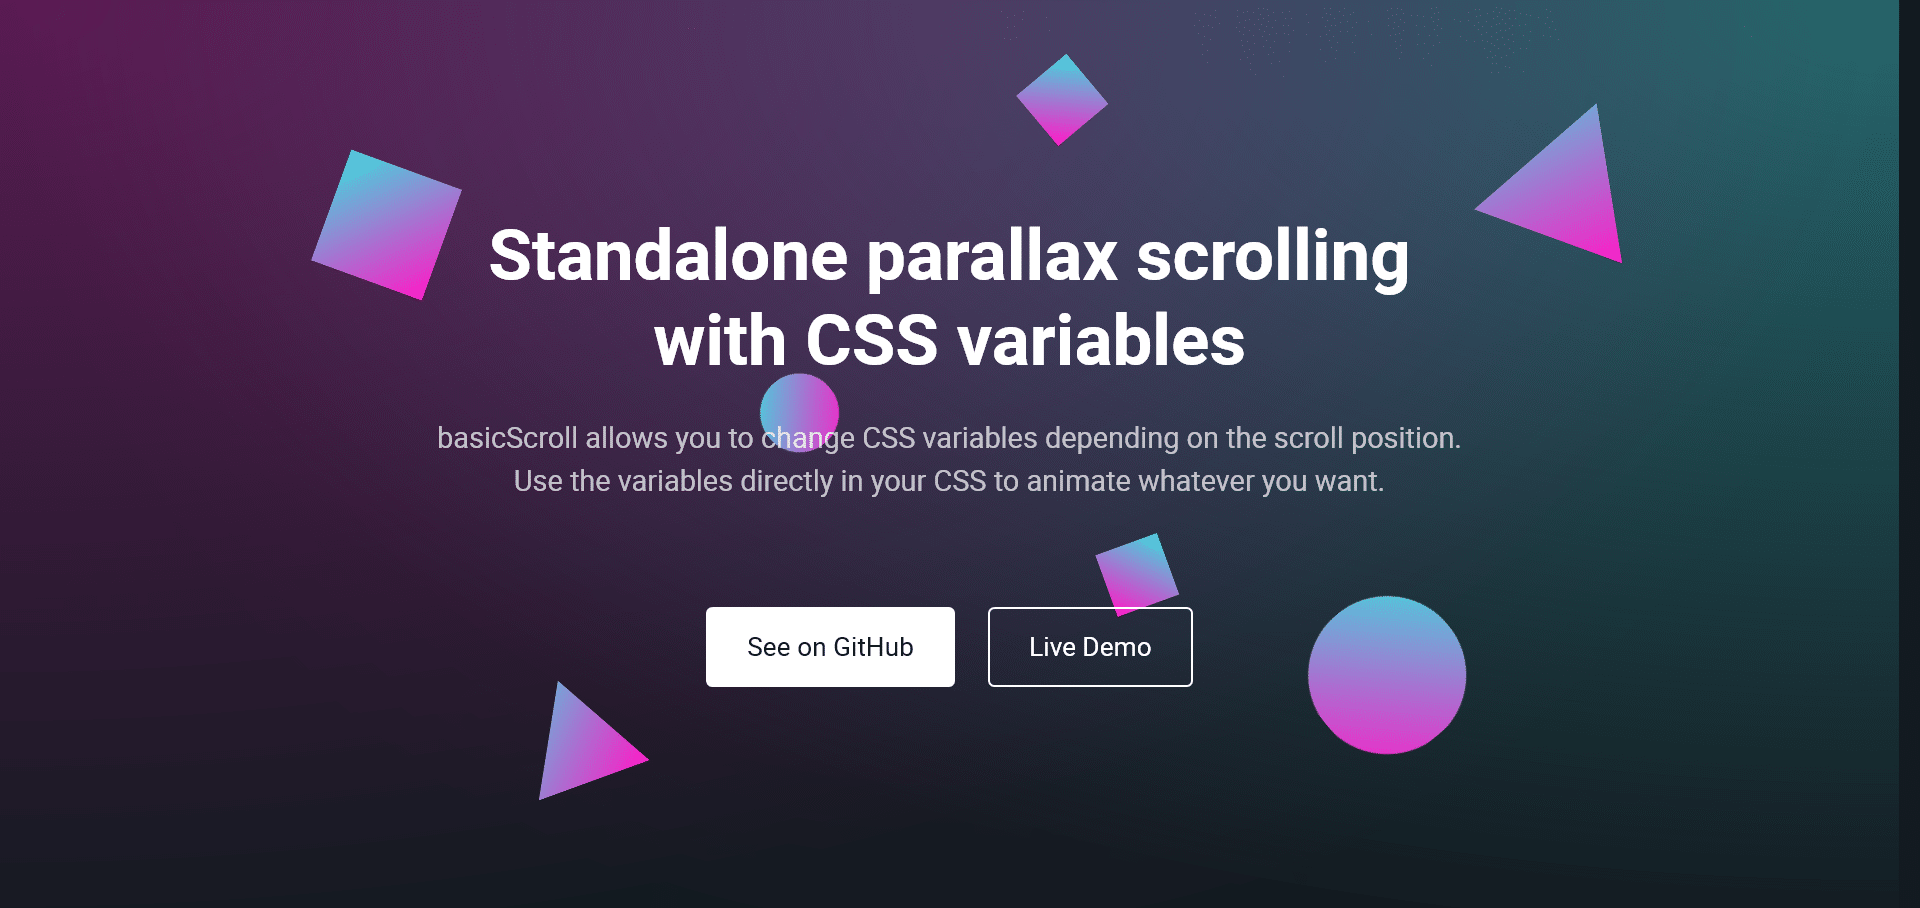 Standalone parallax scrollingwith CSS variables